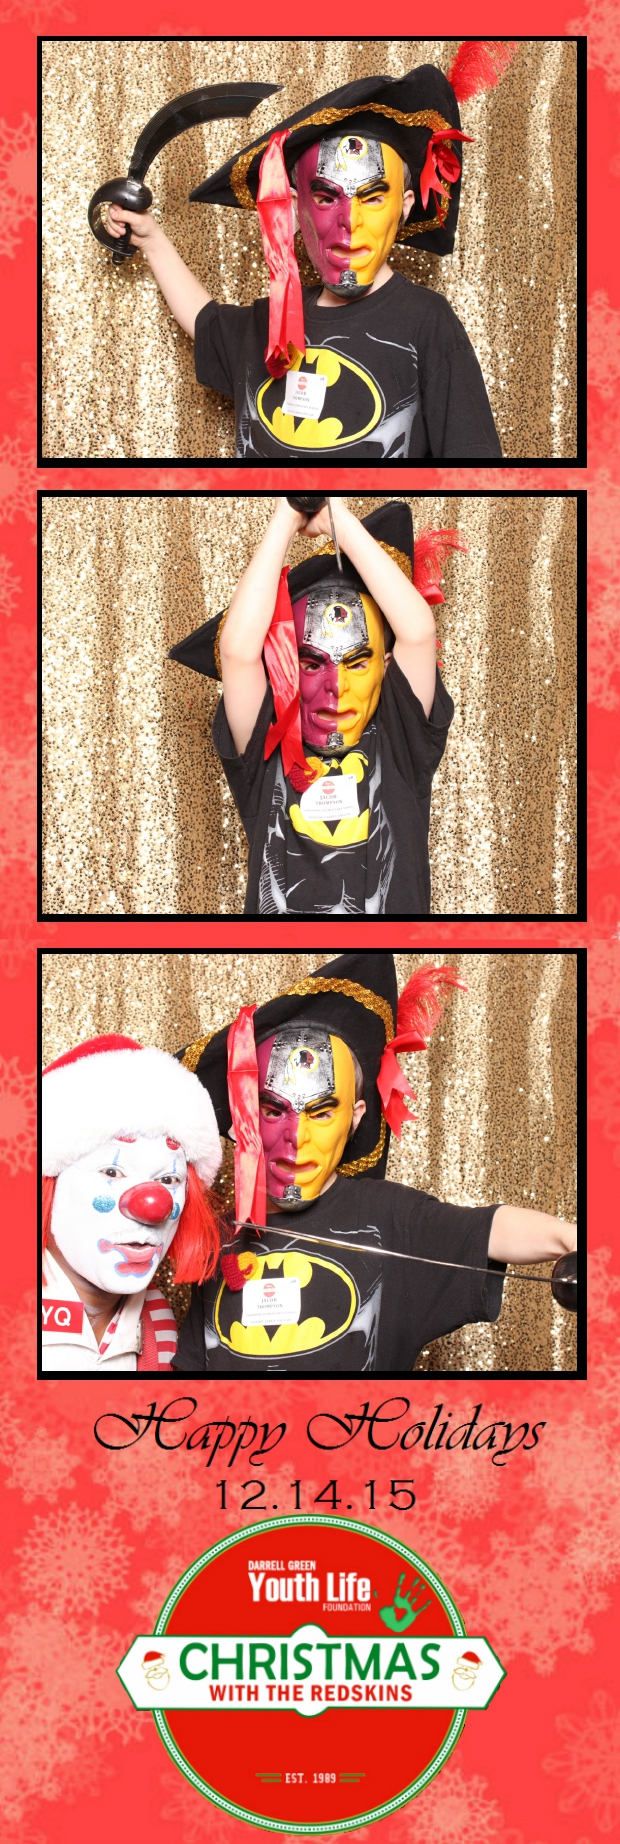 Guest House Events Photo Booth DGYLF Strips (62).jpg